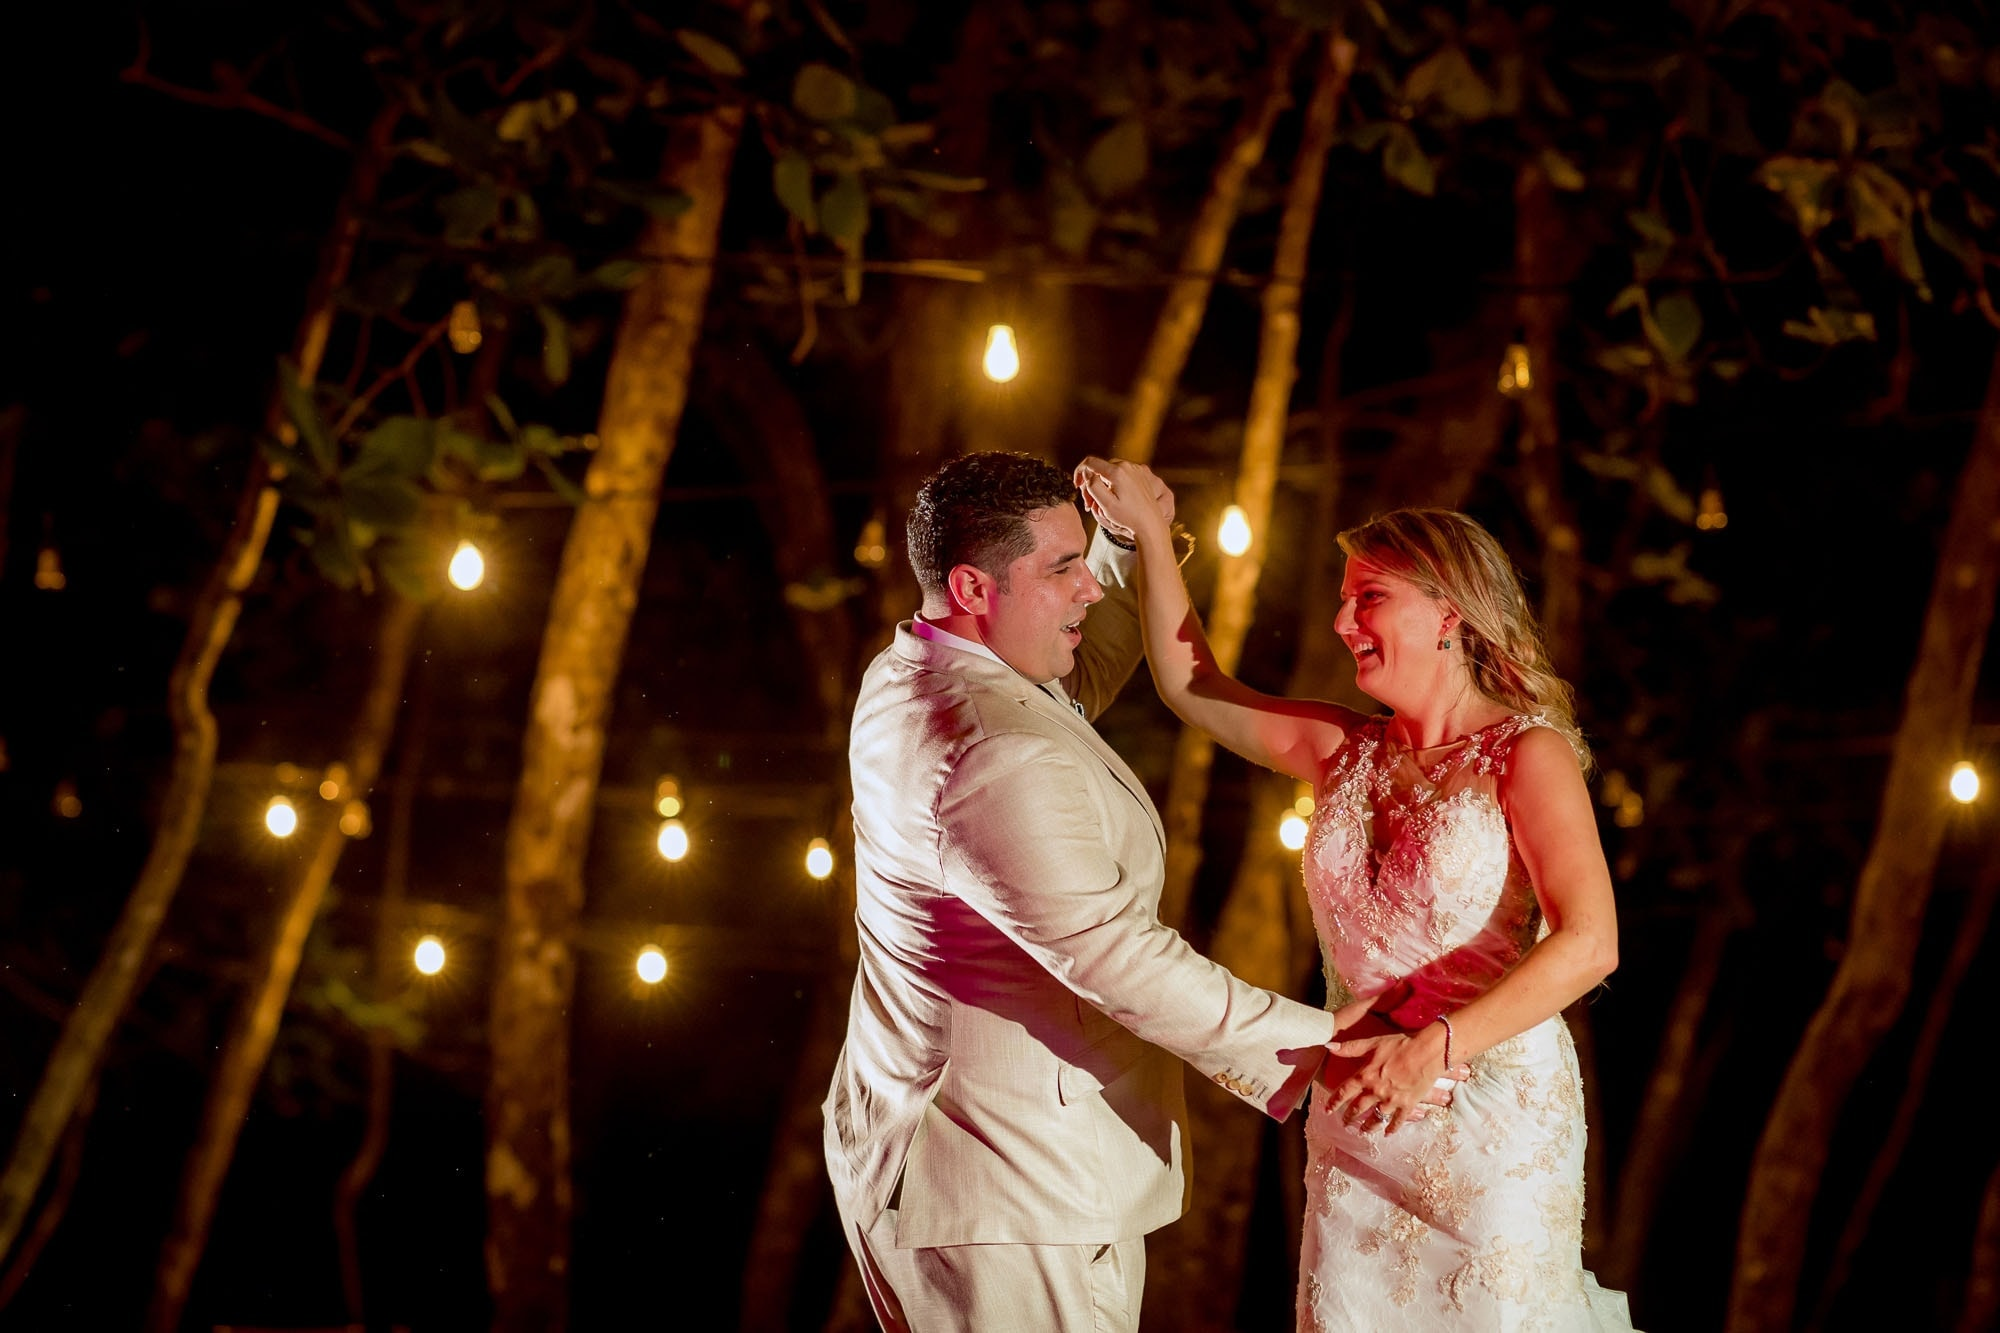 The bride and groom dancing at the beach wedding reception